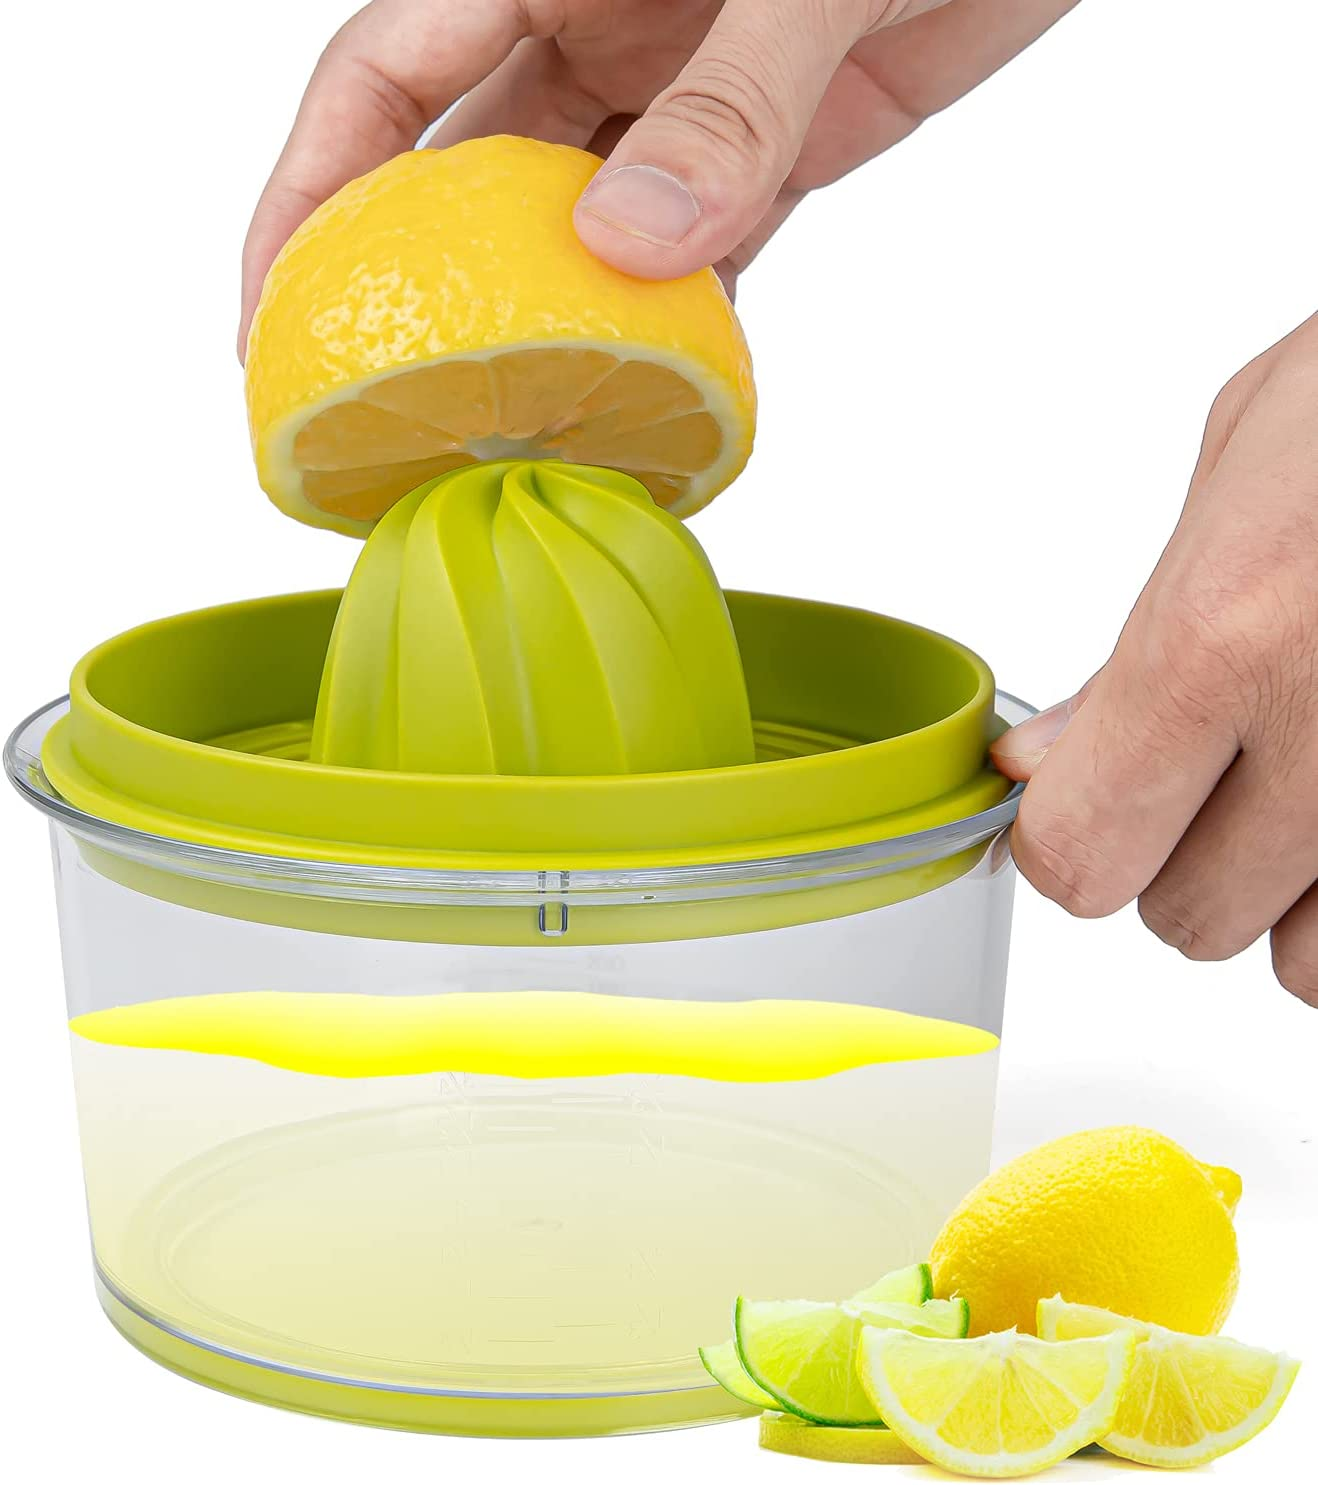 Citrus Juicer Manual Hand Lemon Squeezer, Easy To Use Multi-Function Lemon Orange Juicer Manual Hand Squeezer with Grater and Built-in 16OZ Measuring Cup- By RichPromize